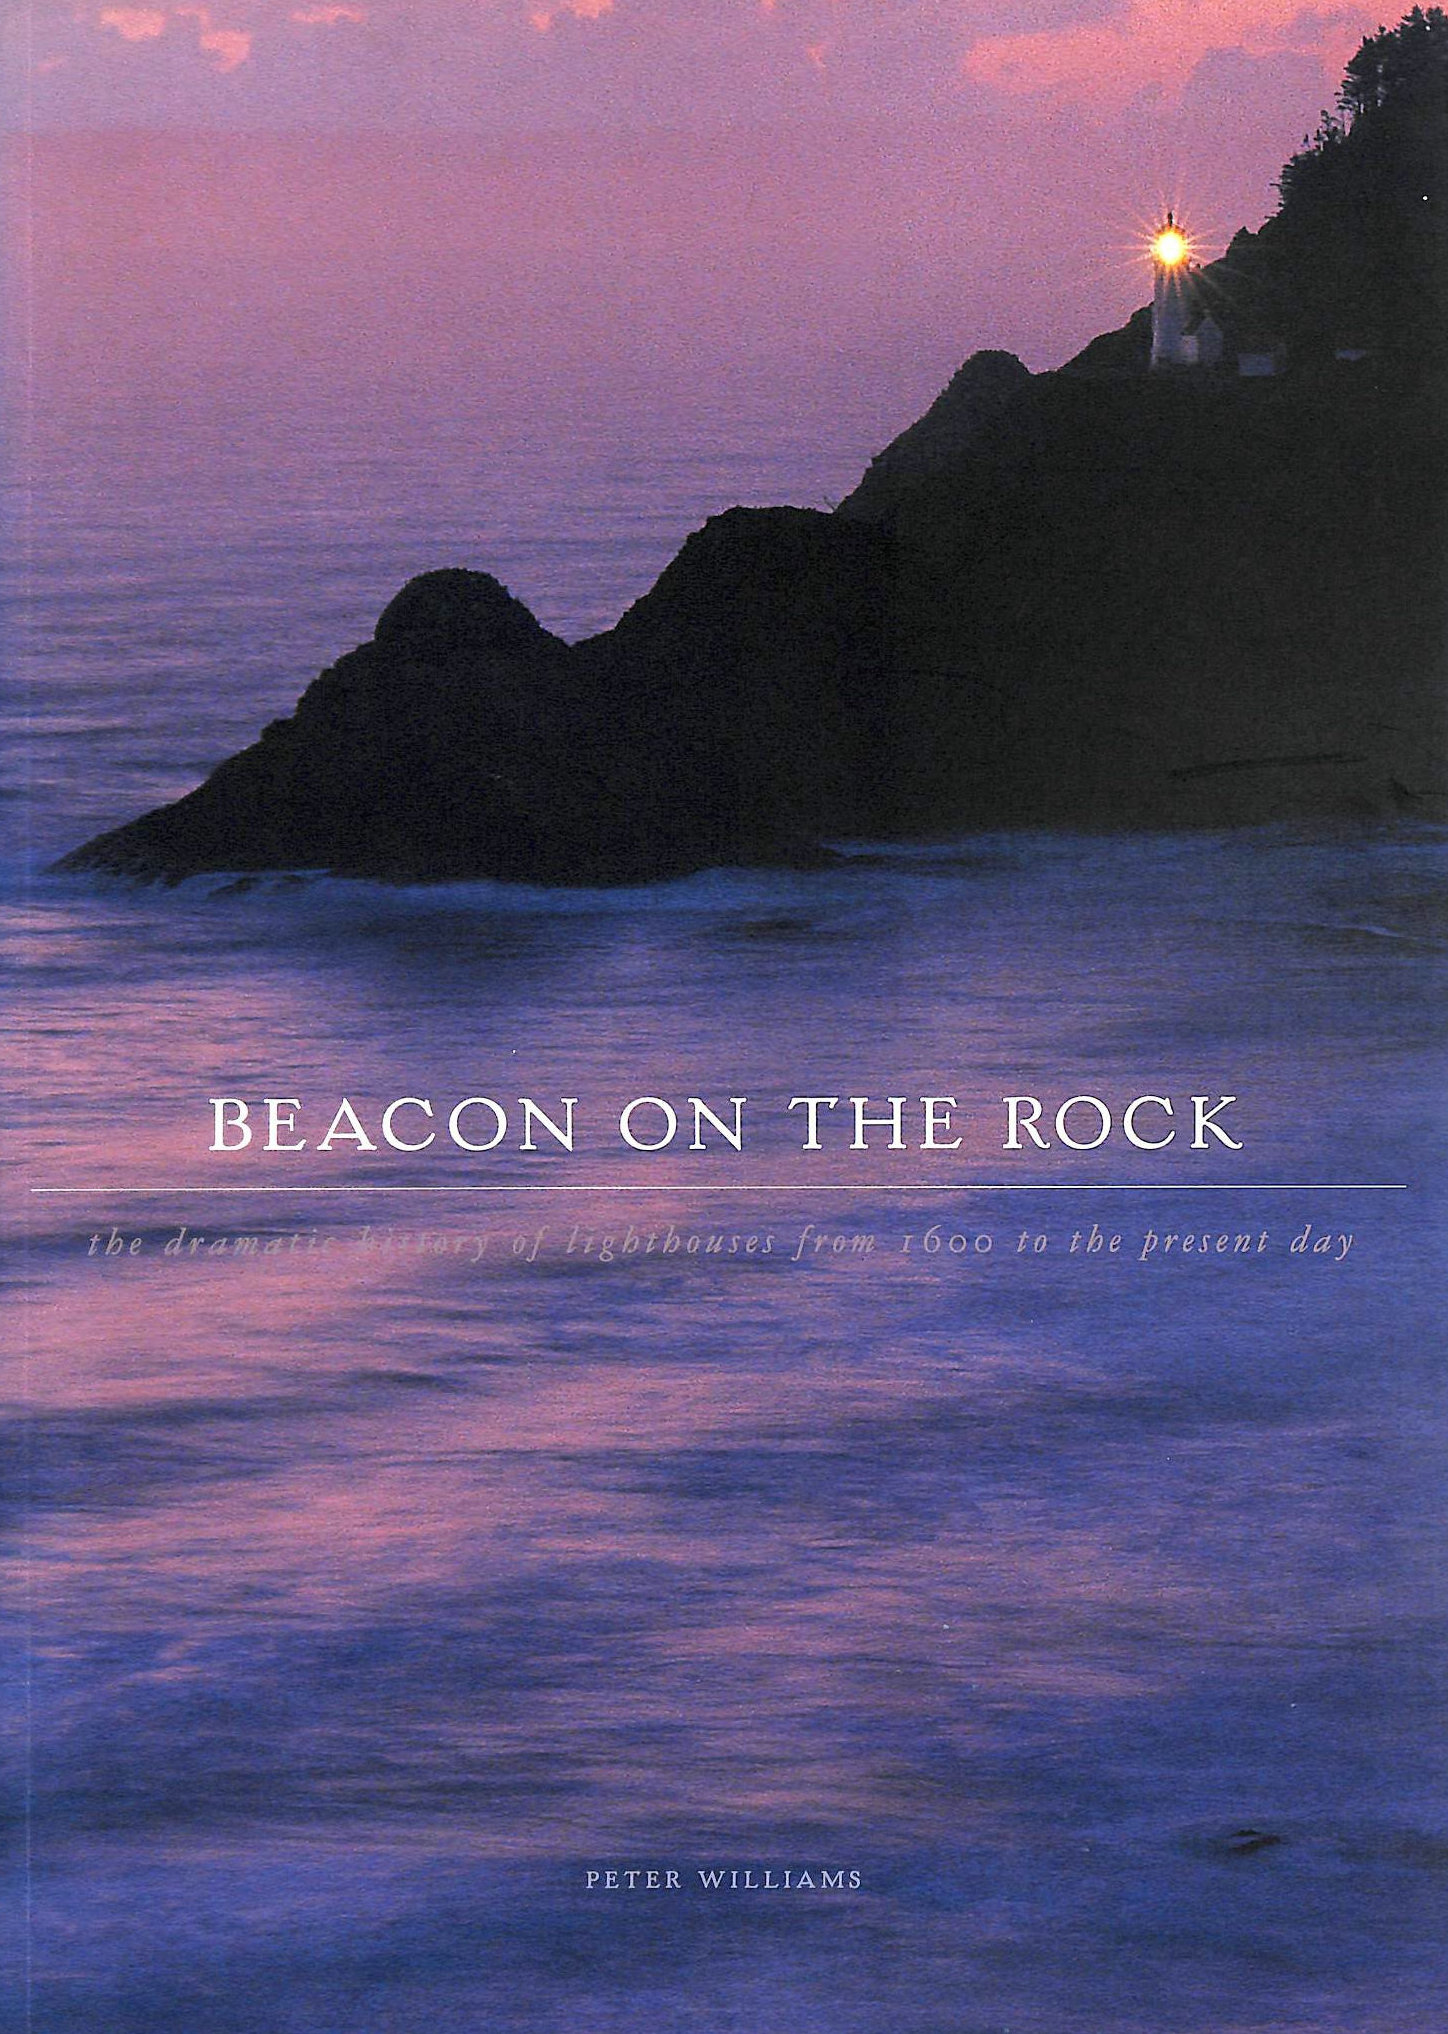 Image for Beacon On The Rock: The Dramatic History Of Lighthouses From 1600 To The Present Day